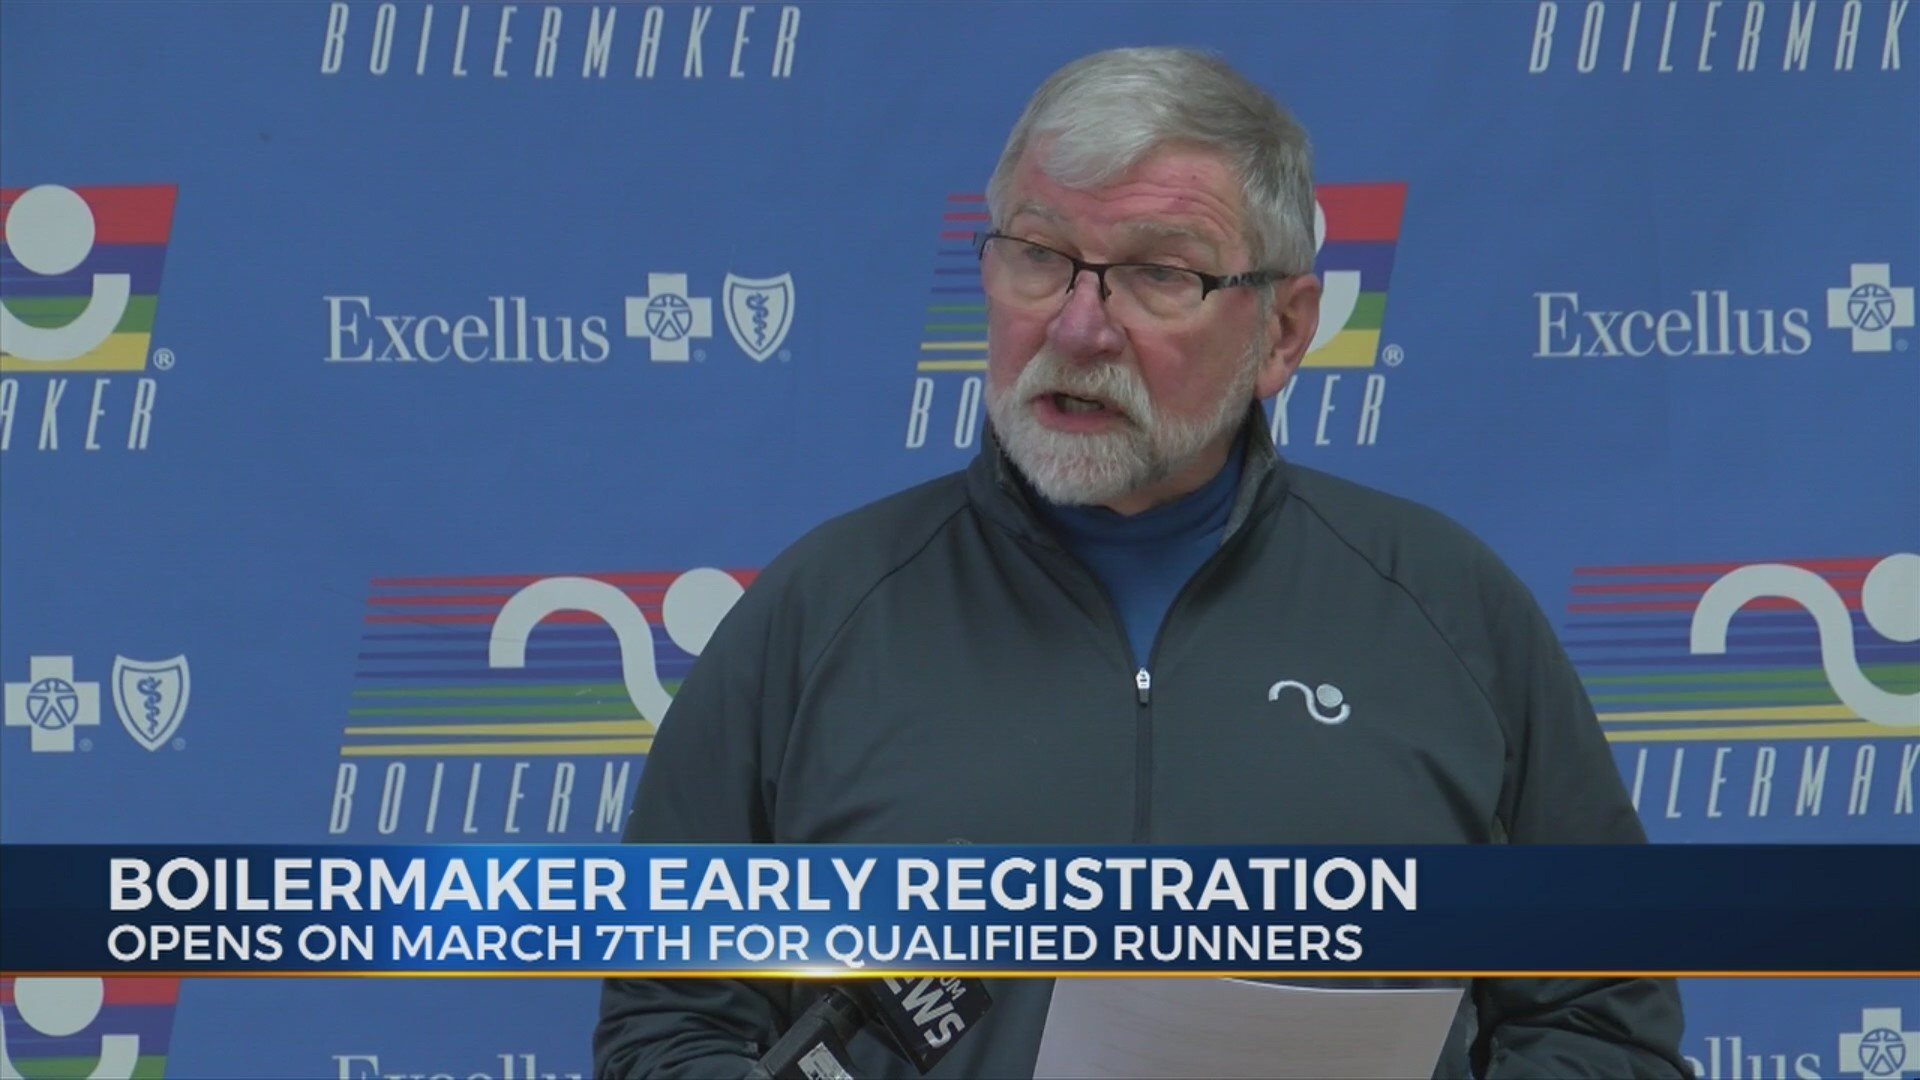 Boilermaker Announces Early Registration